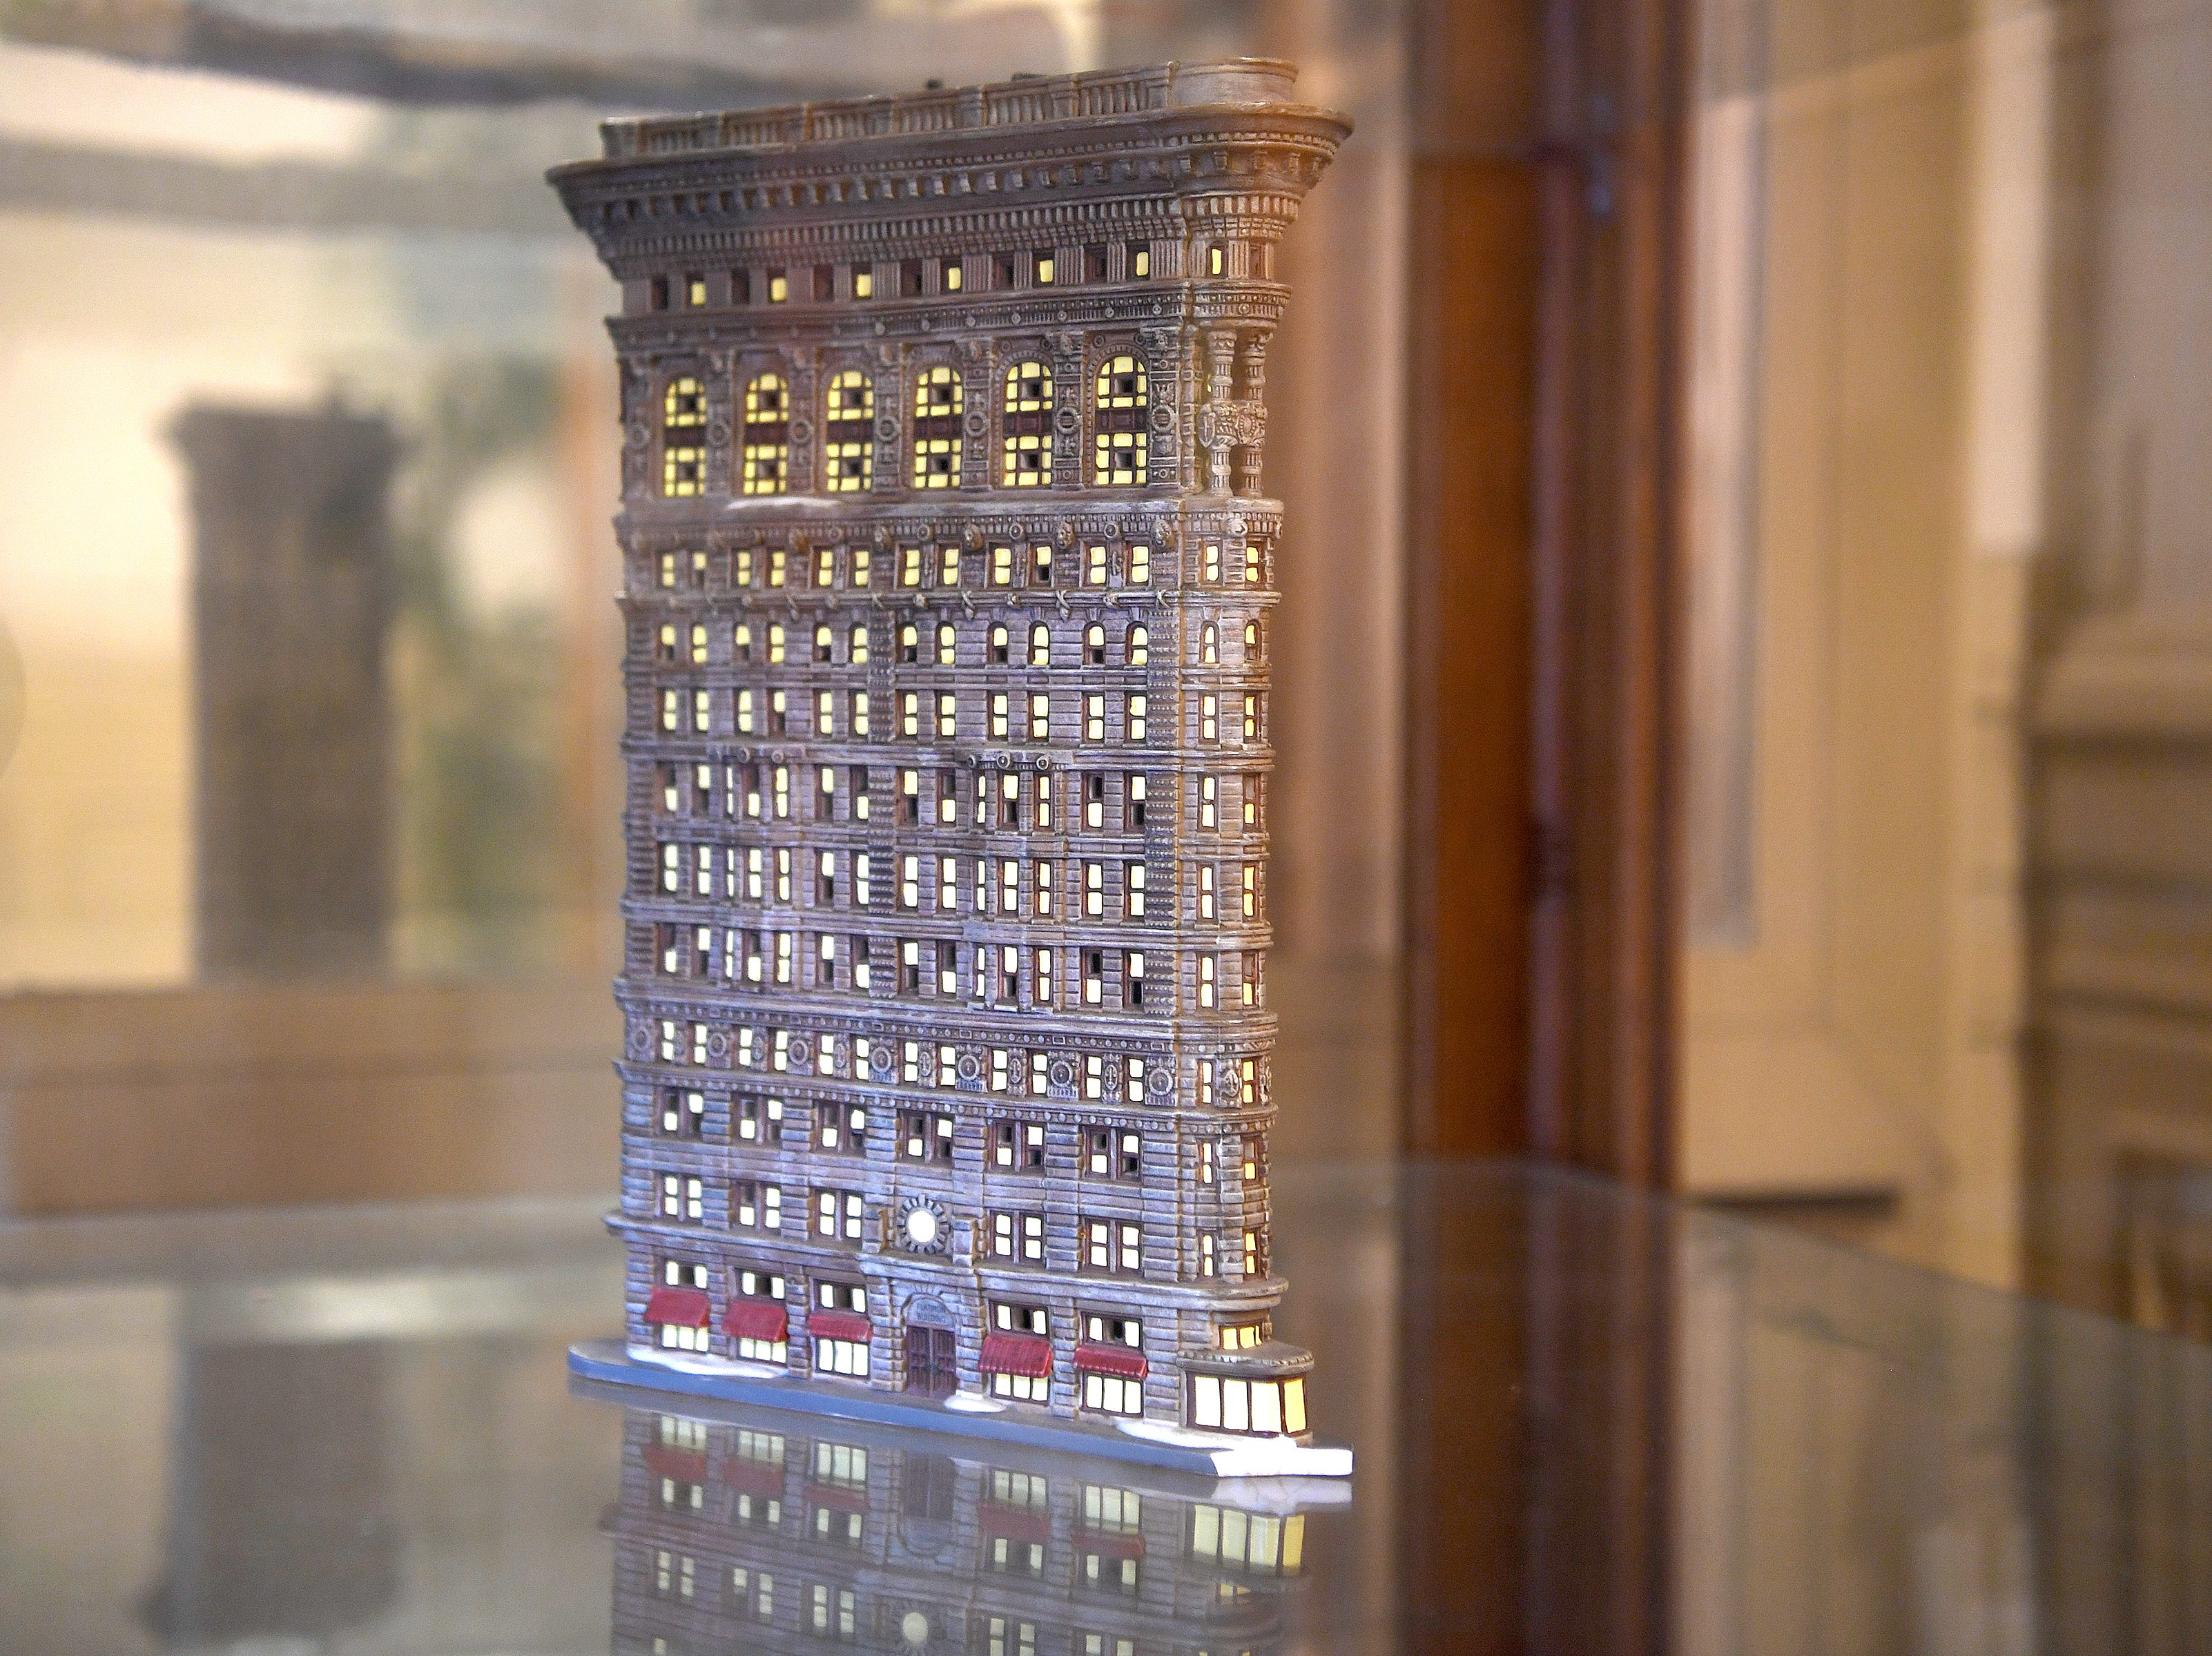 A model of the Flatiron Building in New York City is displayed in a case in the Flatiron Building in Asheville.